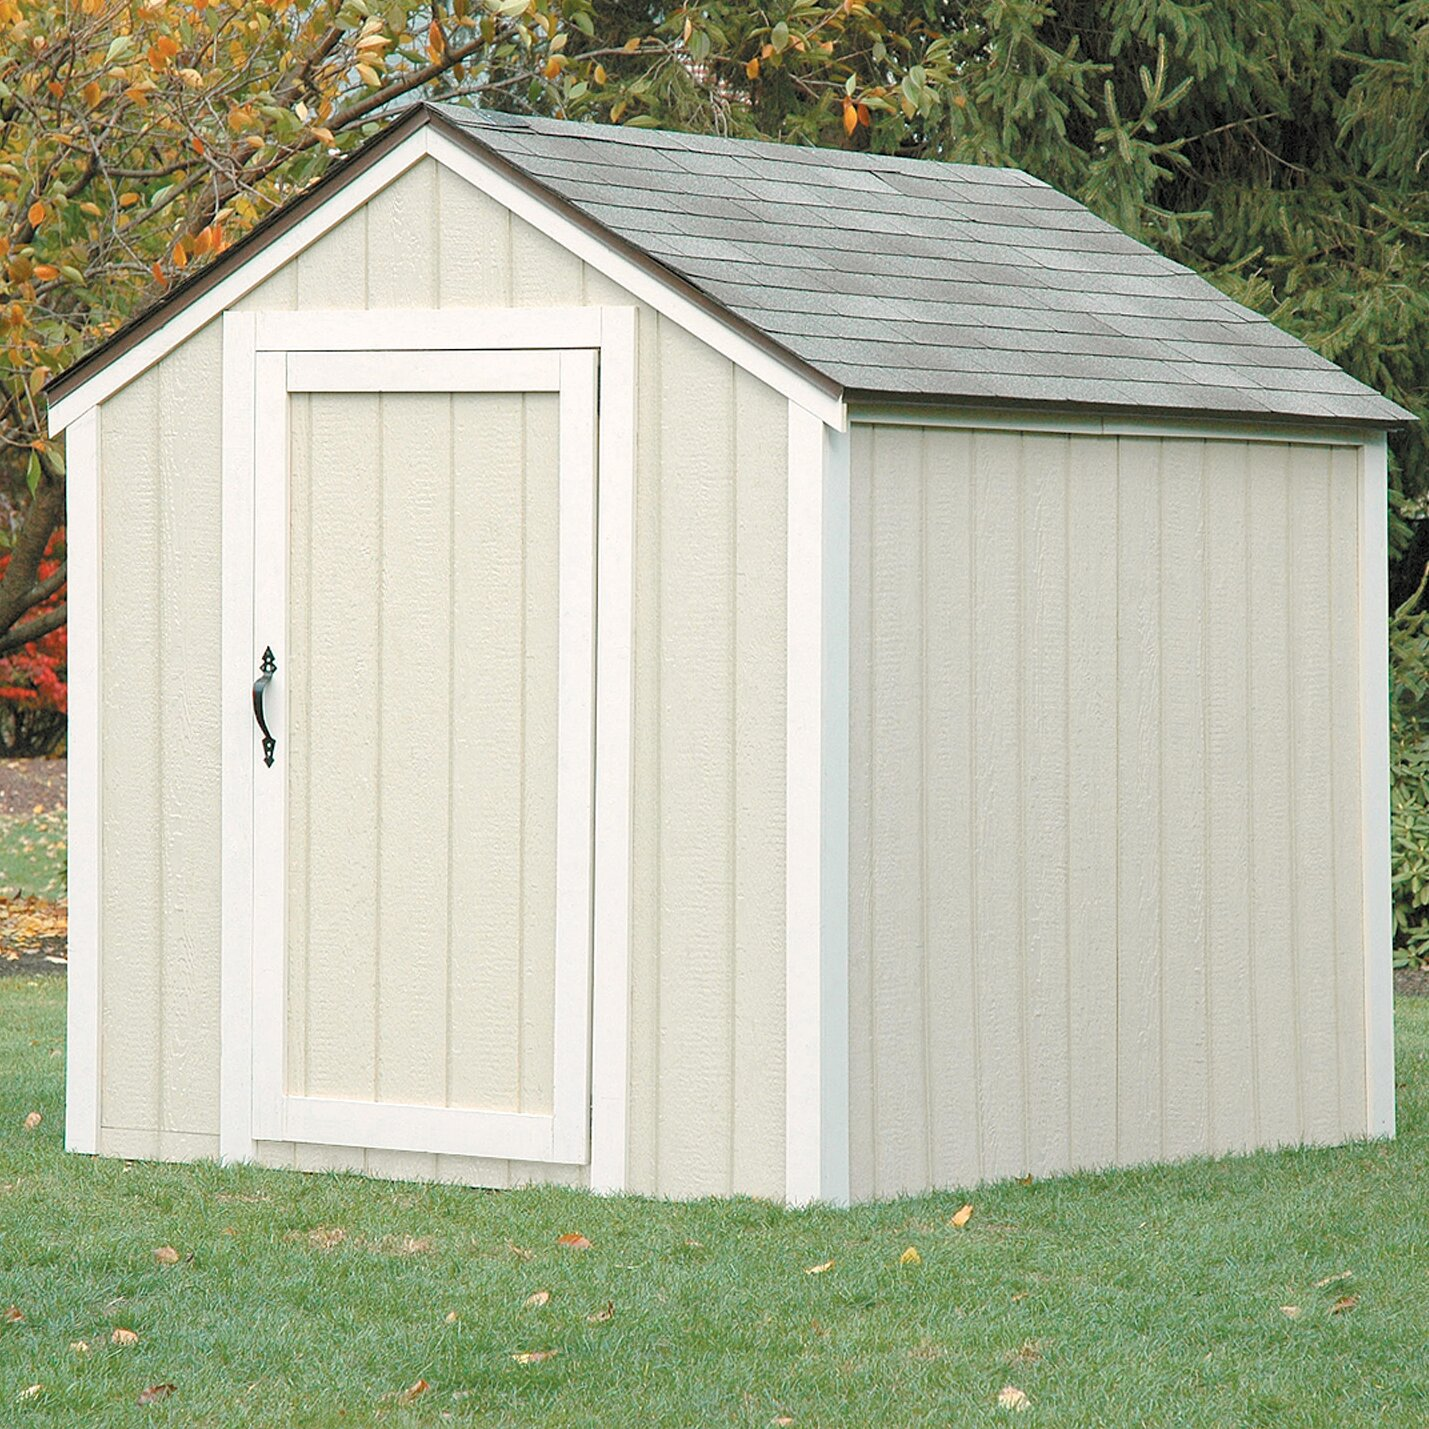 2x4 Basics Peak Roof Shed Kit Reviews Wayfair